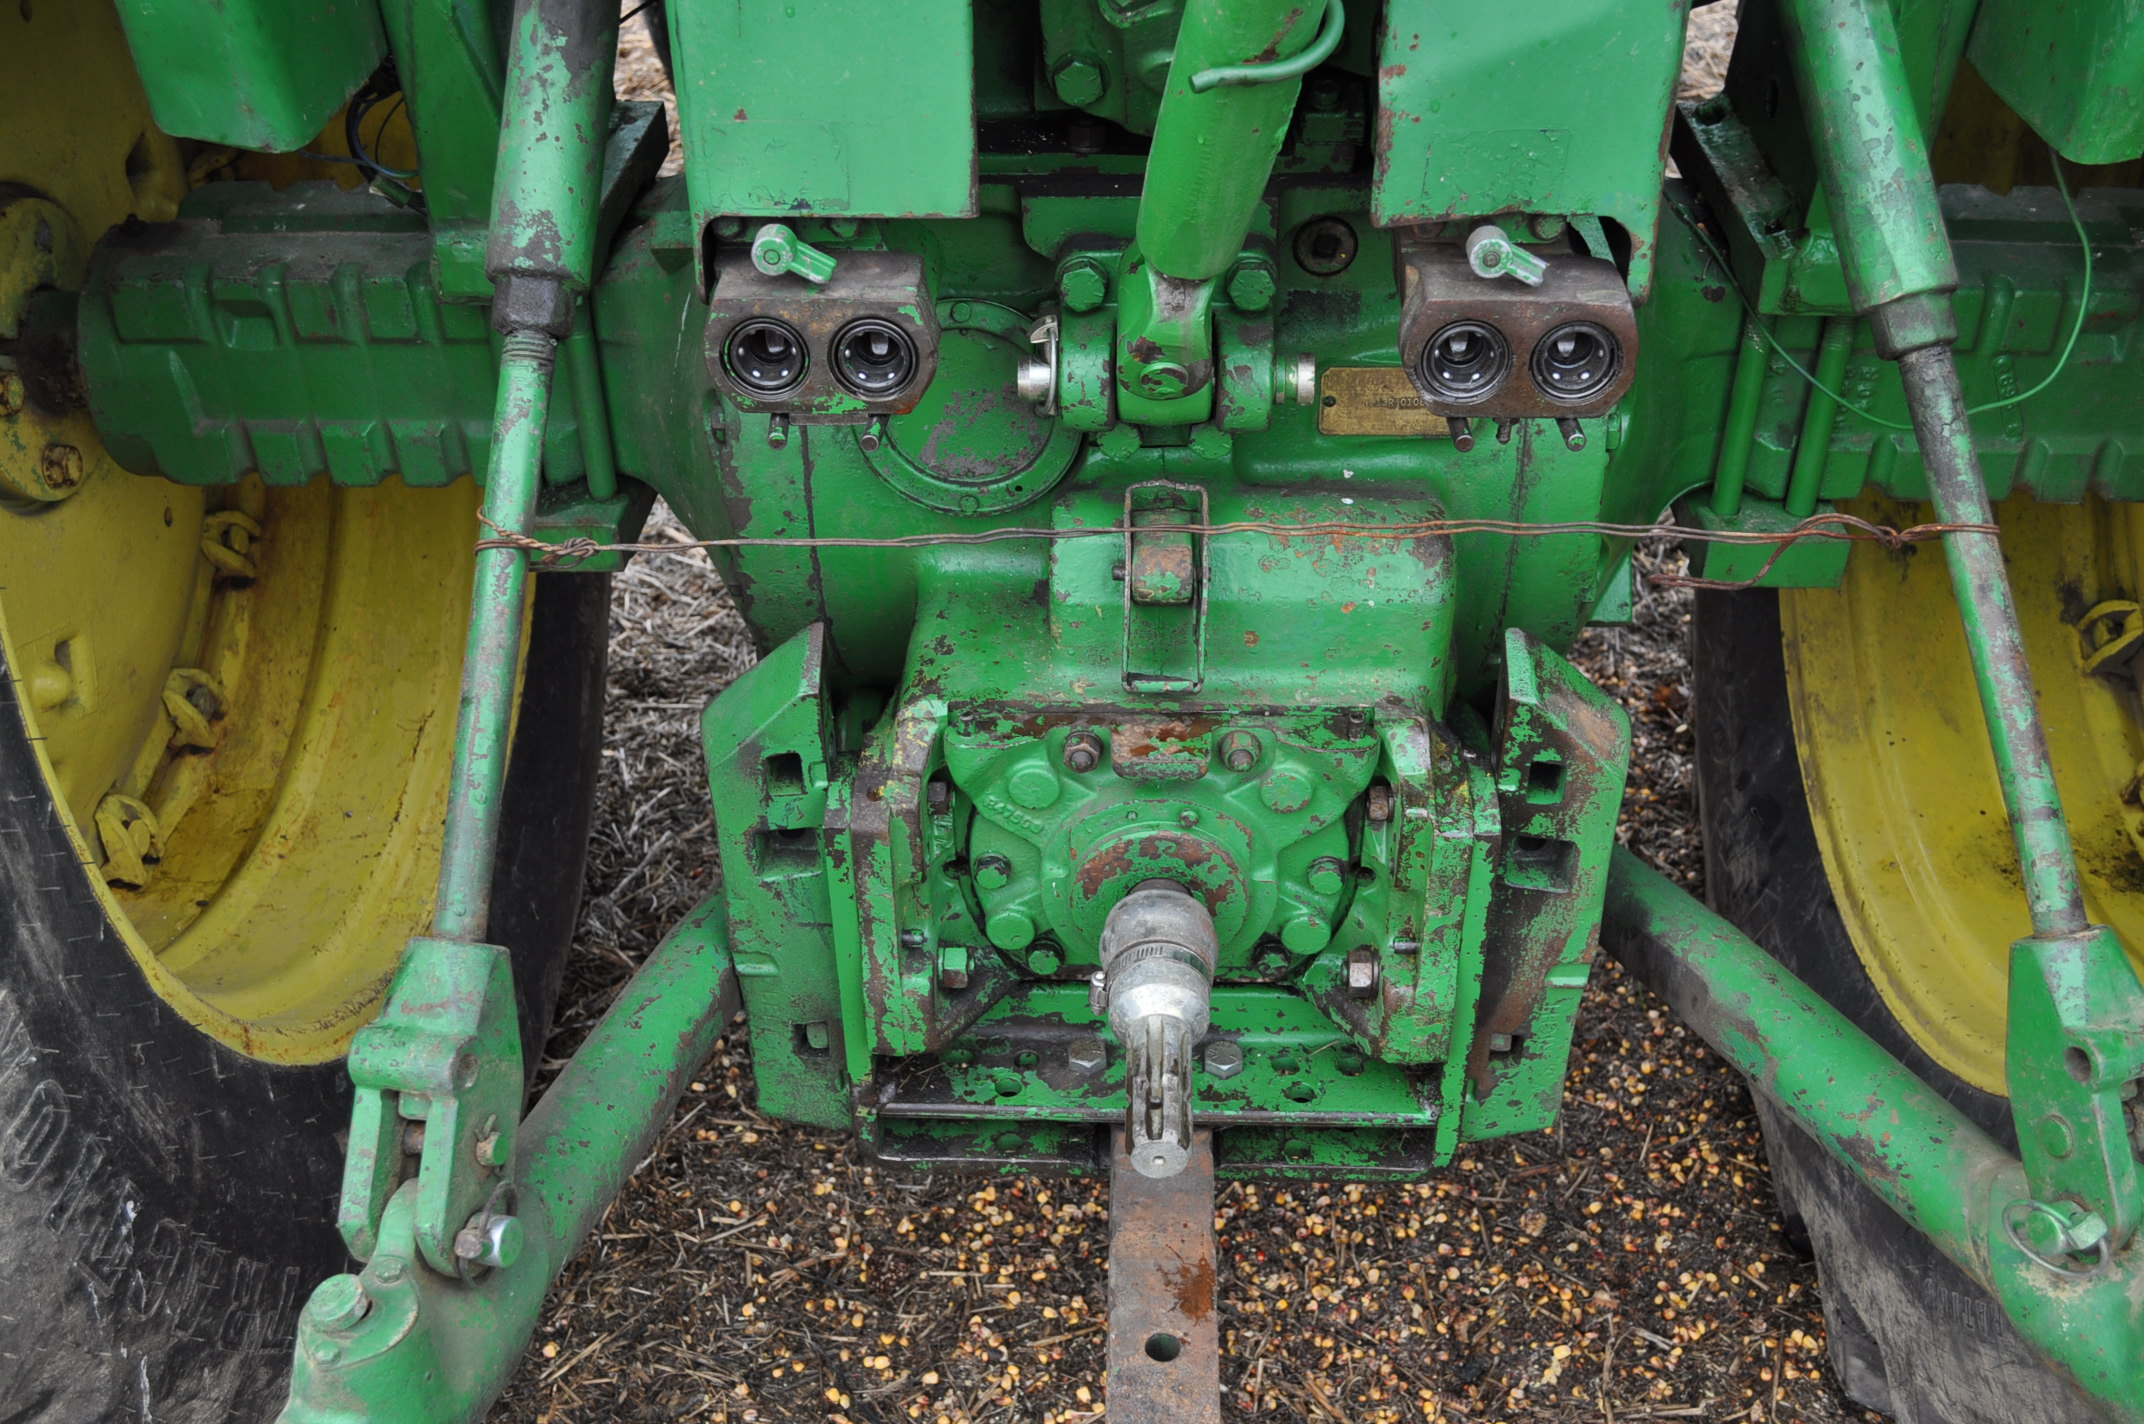 John Deere 4320 tractor, diesel, 18.4-38 duals, 10.00-16 wide front, Syncro, 2 hyd remotes, 540/1000 - Image 14 of 20